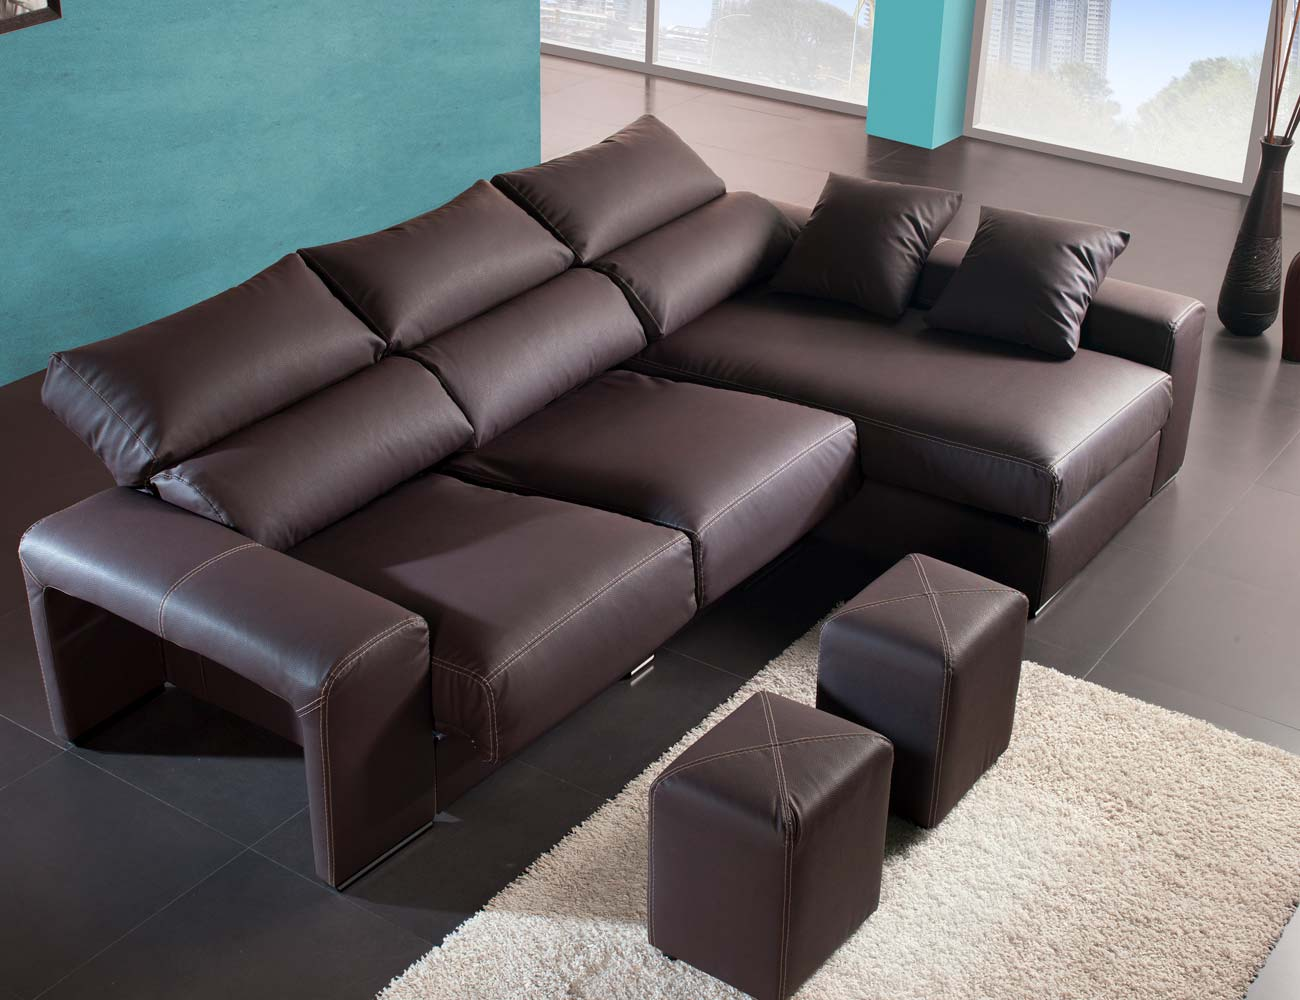 Sofa chaiselongue moderno polipiel chocolate poufs taburetes53